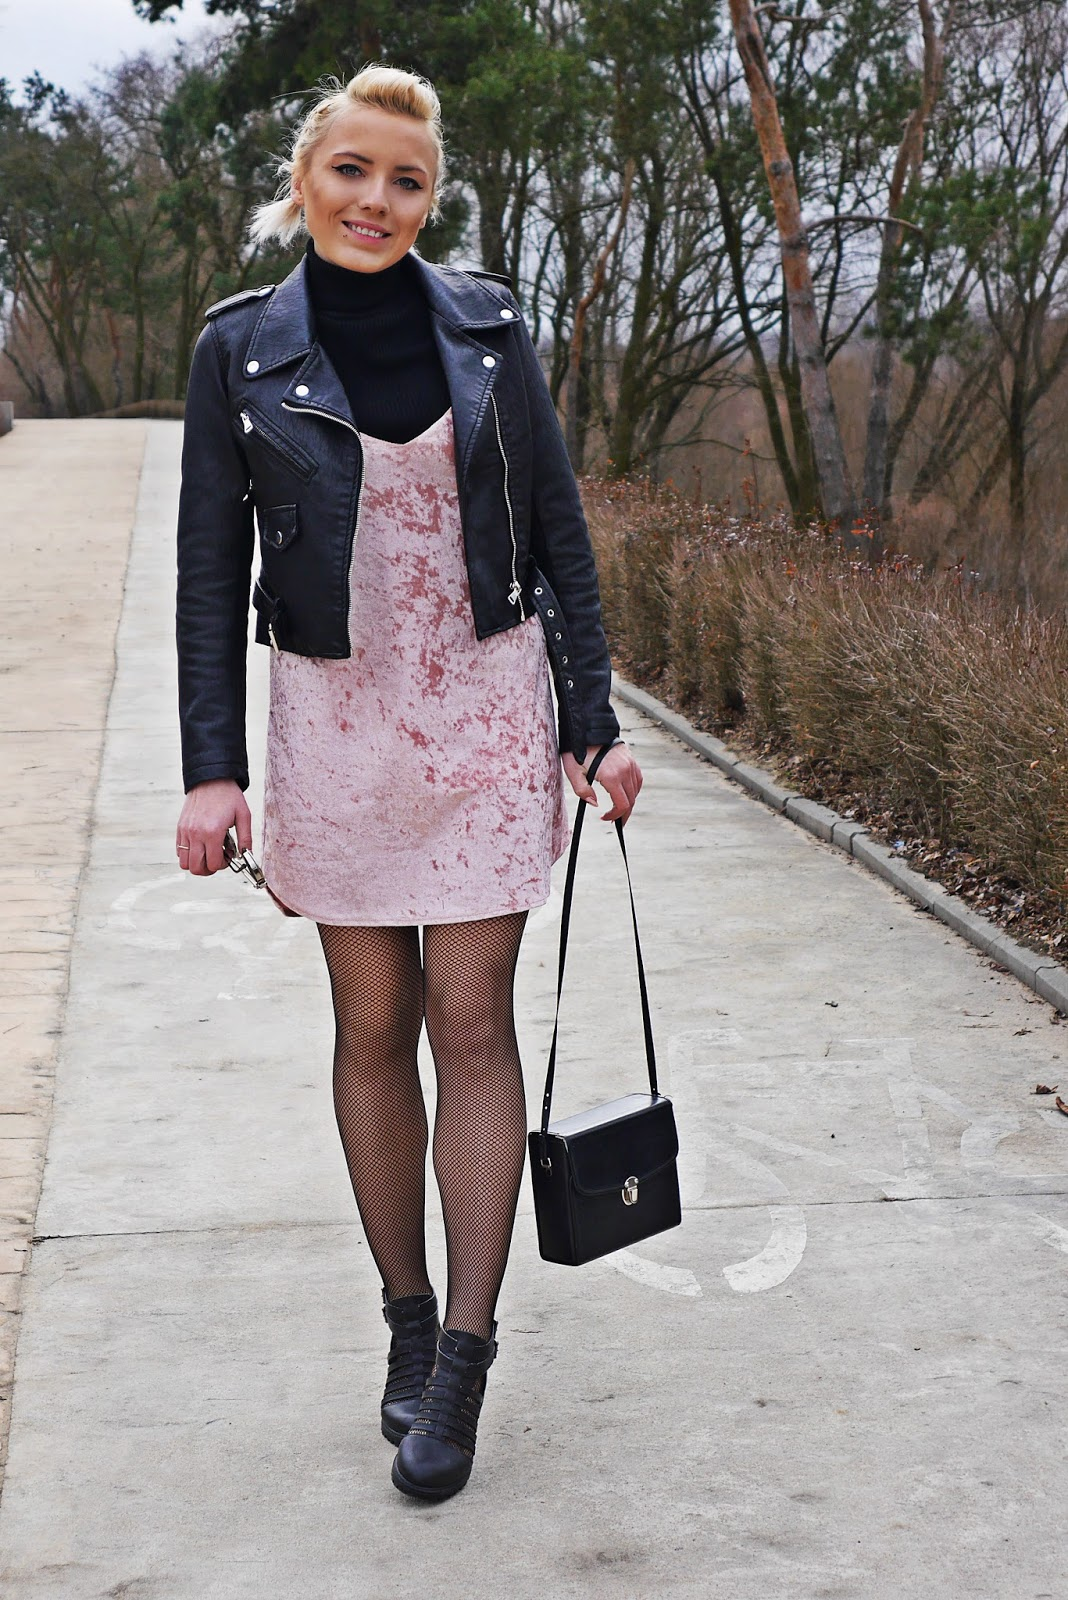 velvet_dress_biker_Jacket_look_ootd_karyn_130317